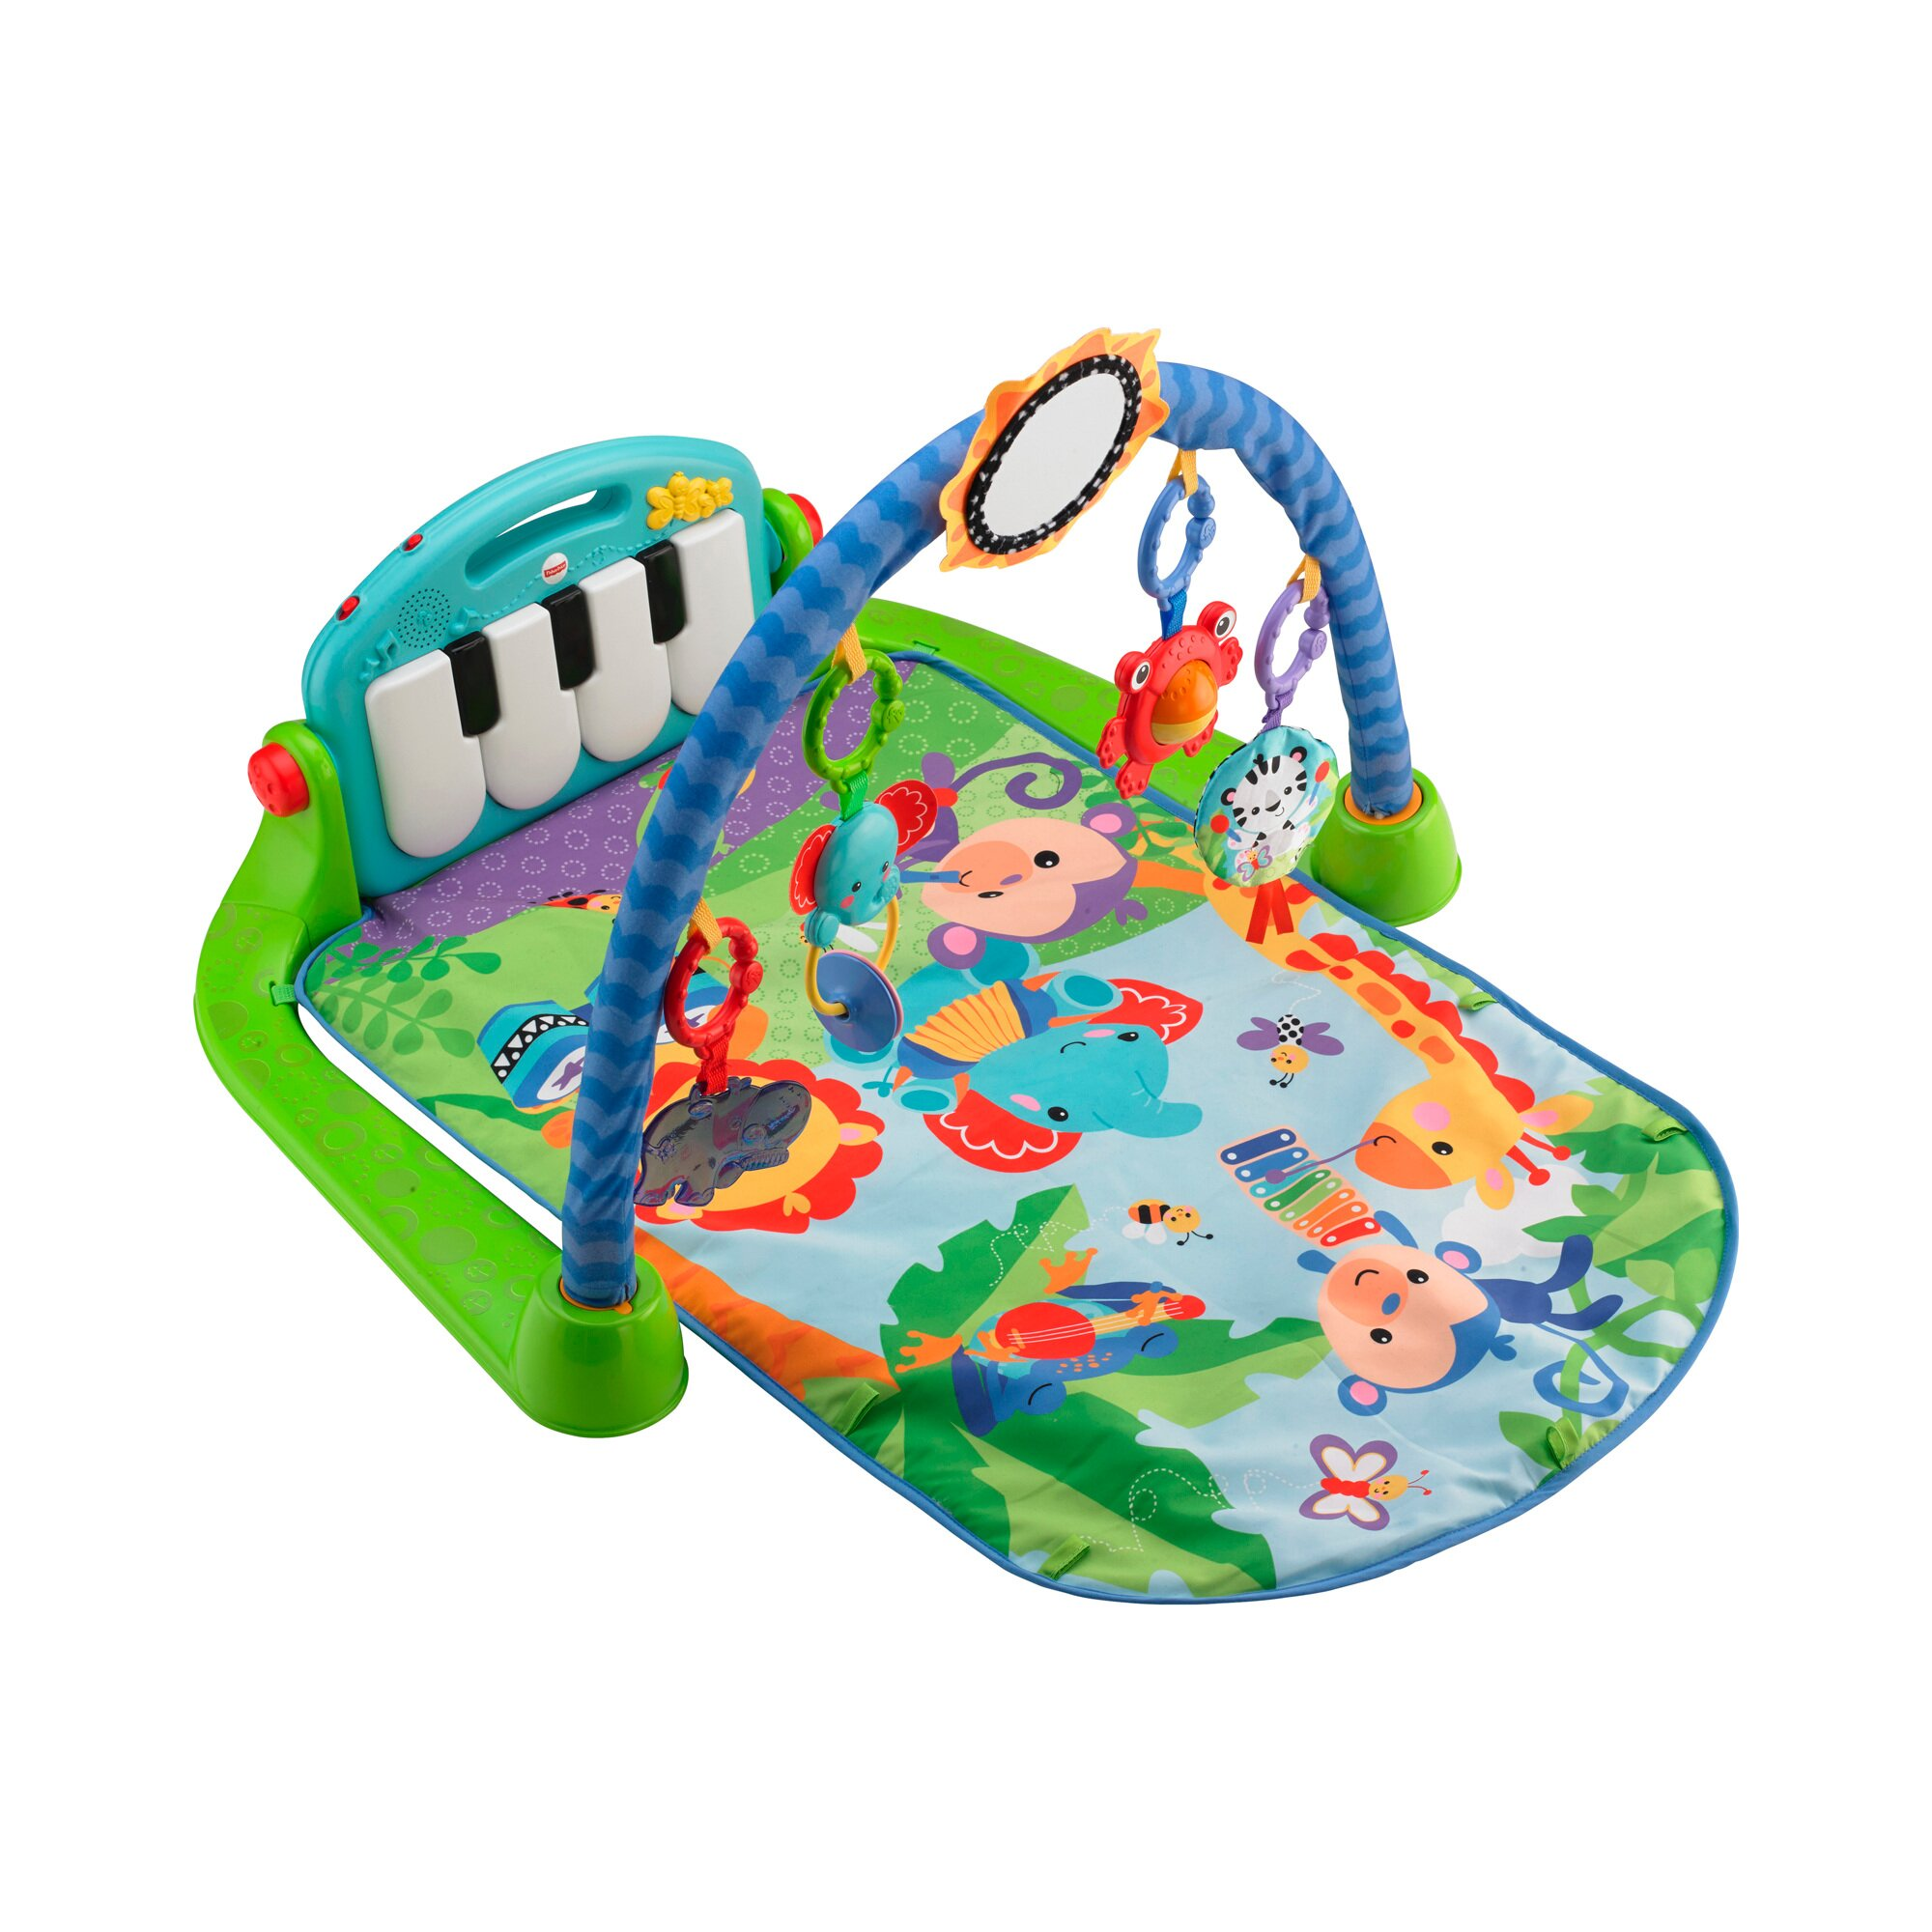 fisher price rainforest piano gym preisvergleich. Black Bedroom Furniture Sets. Home Design Ideas